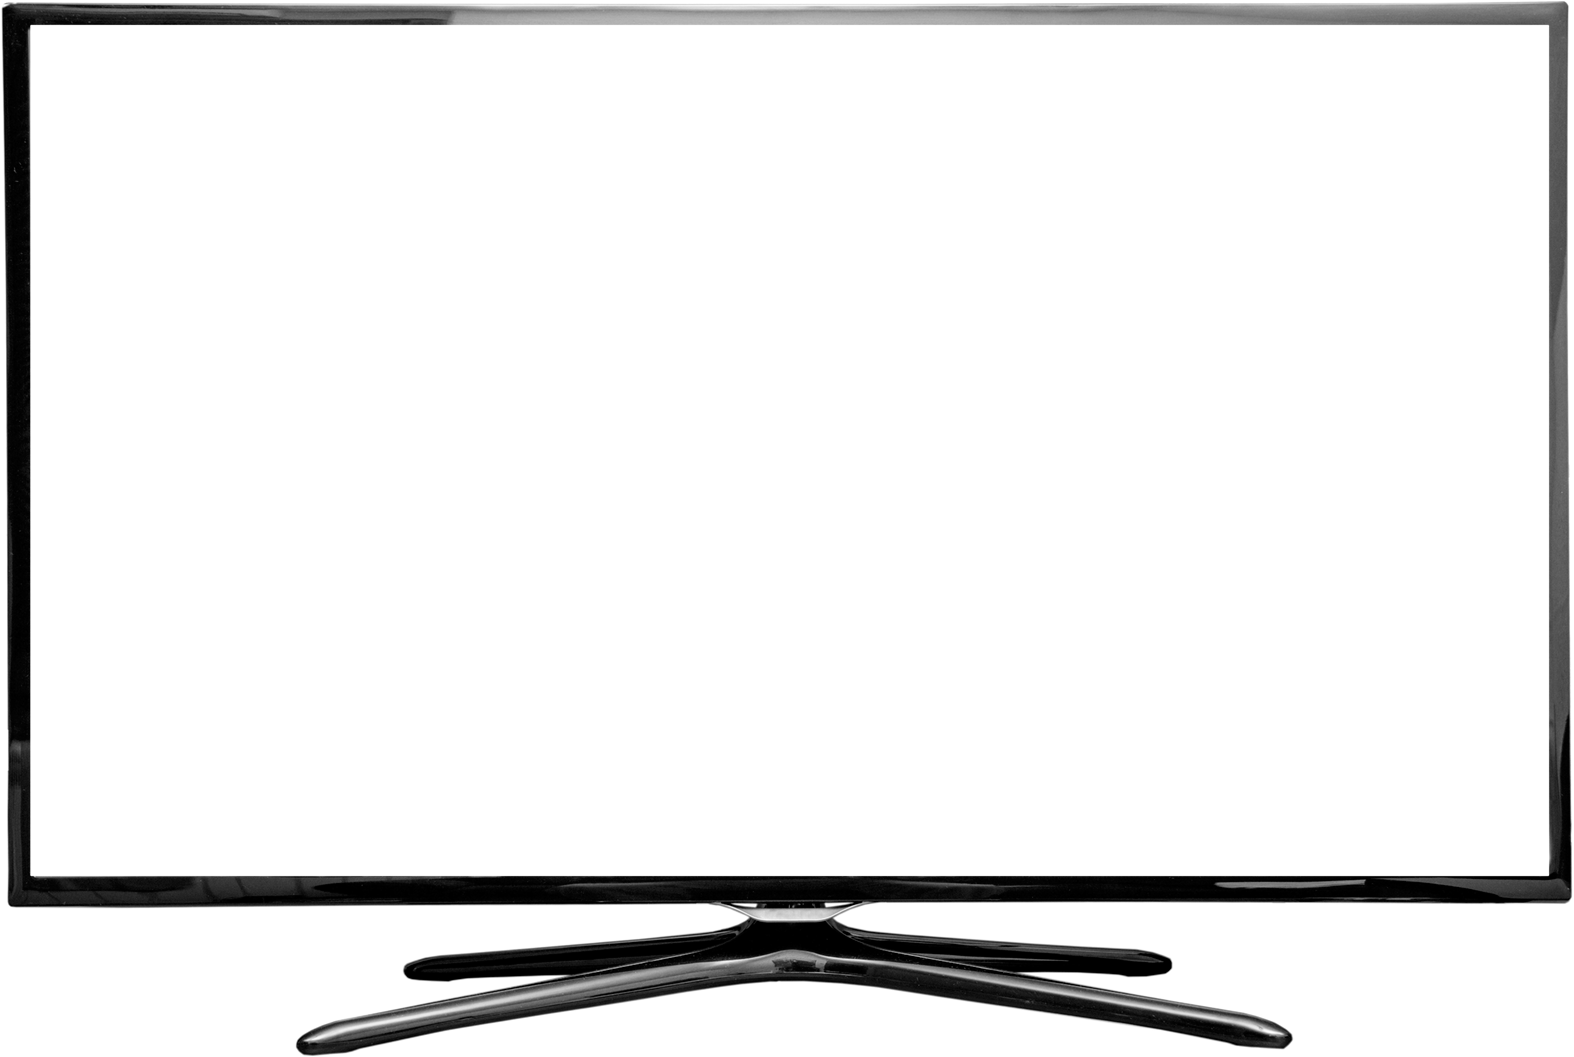 TV png images, old tv, free download.